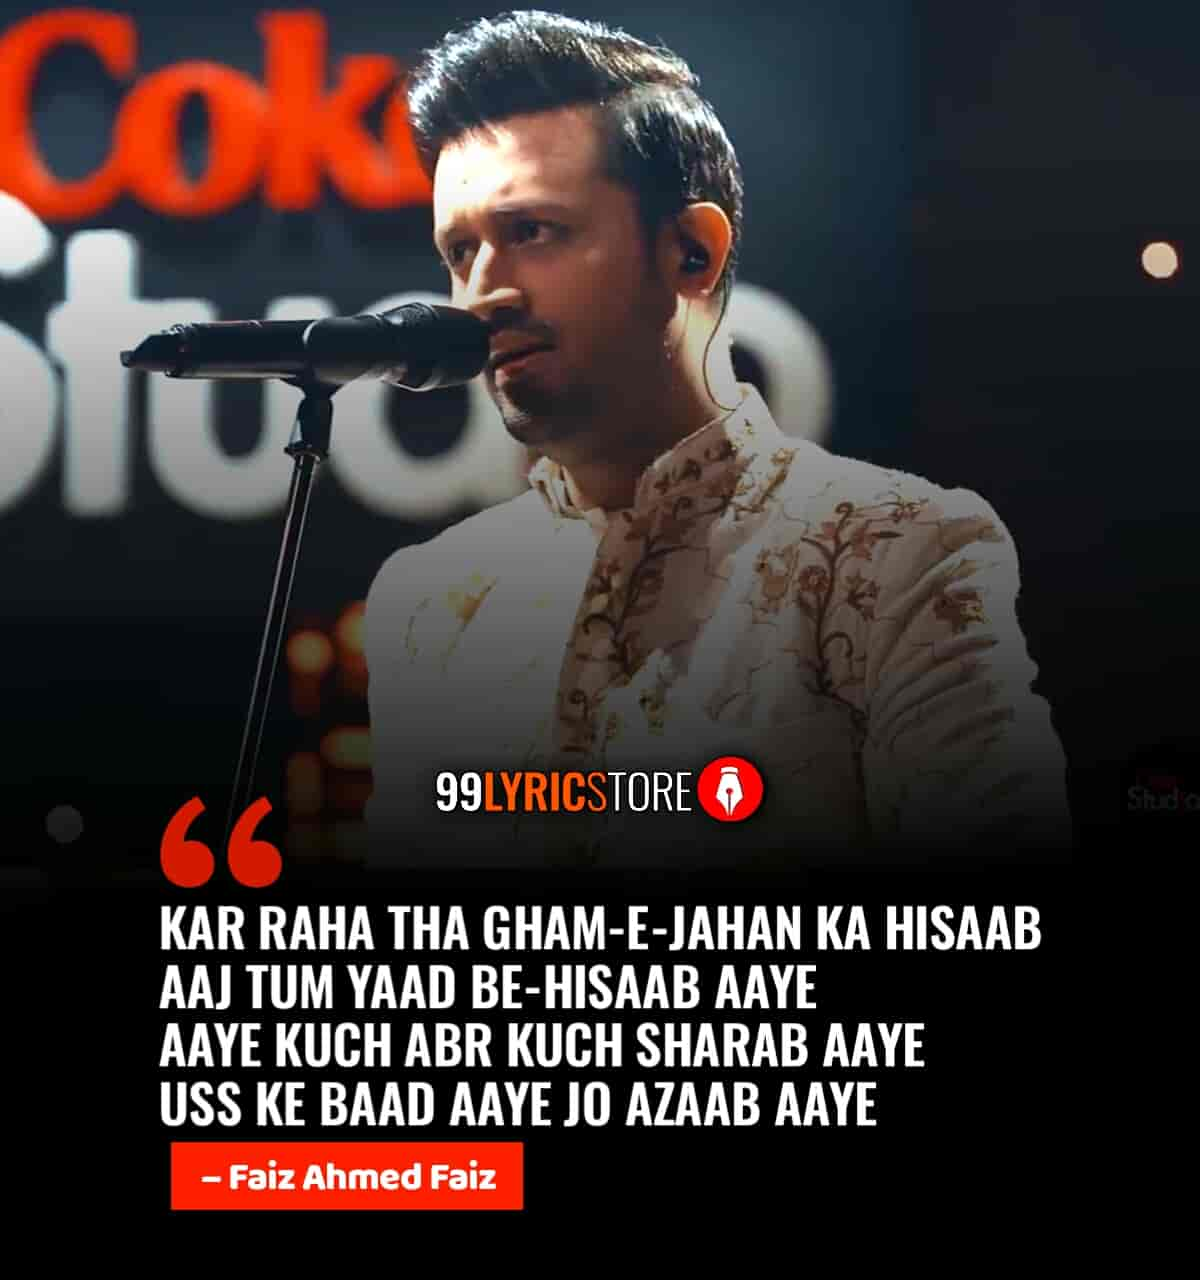 Aaye Kuch Abr Song Images of Atif Aslam